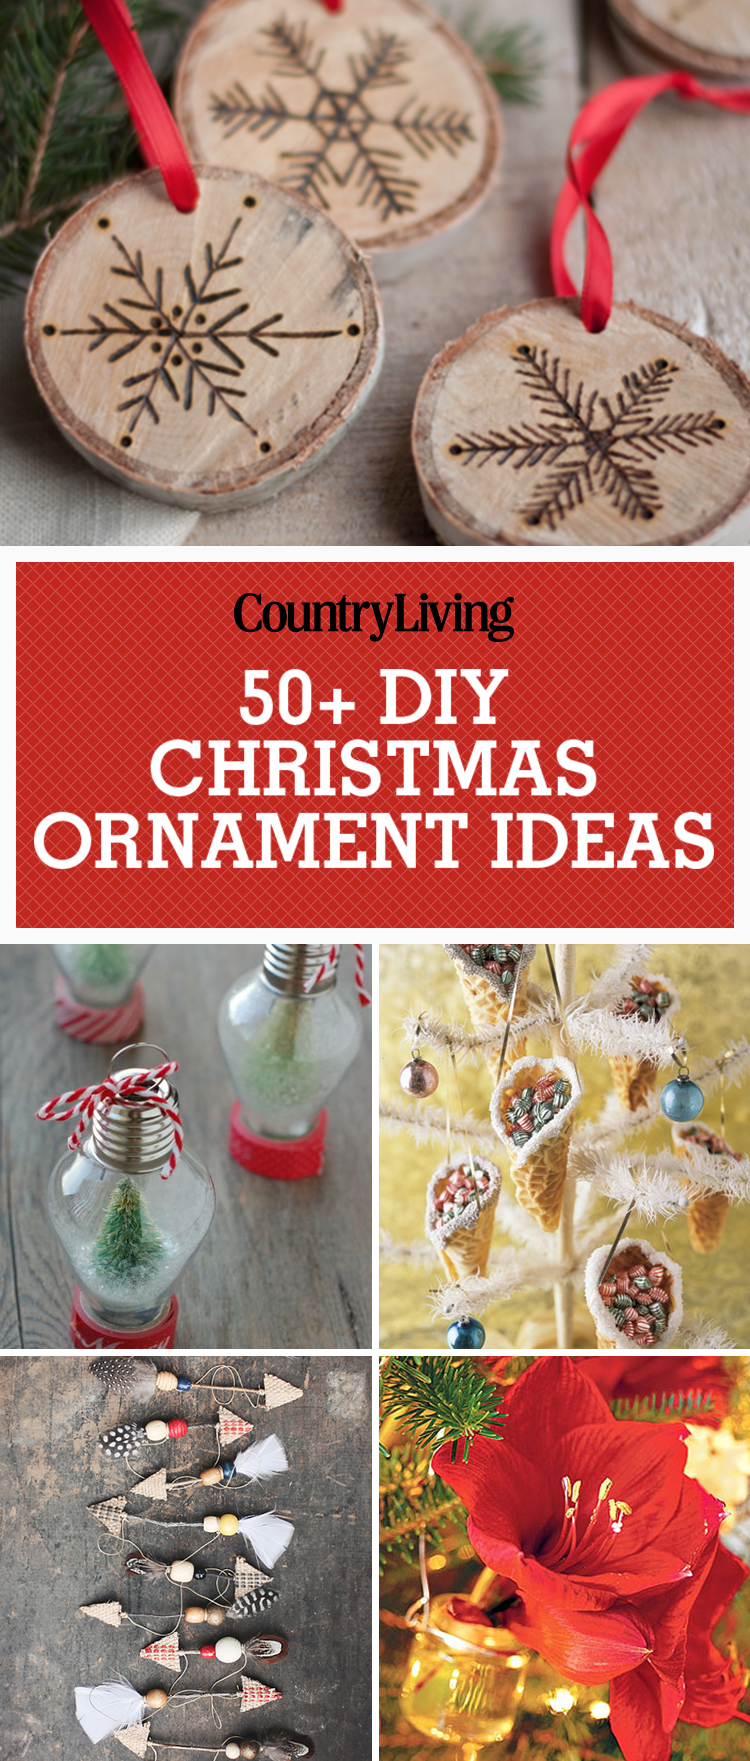 55 Homemade Christmas Ornaments - DIY Crafts with ...